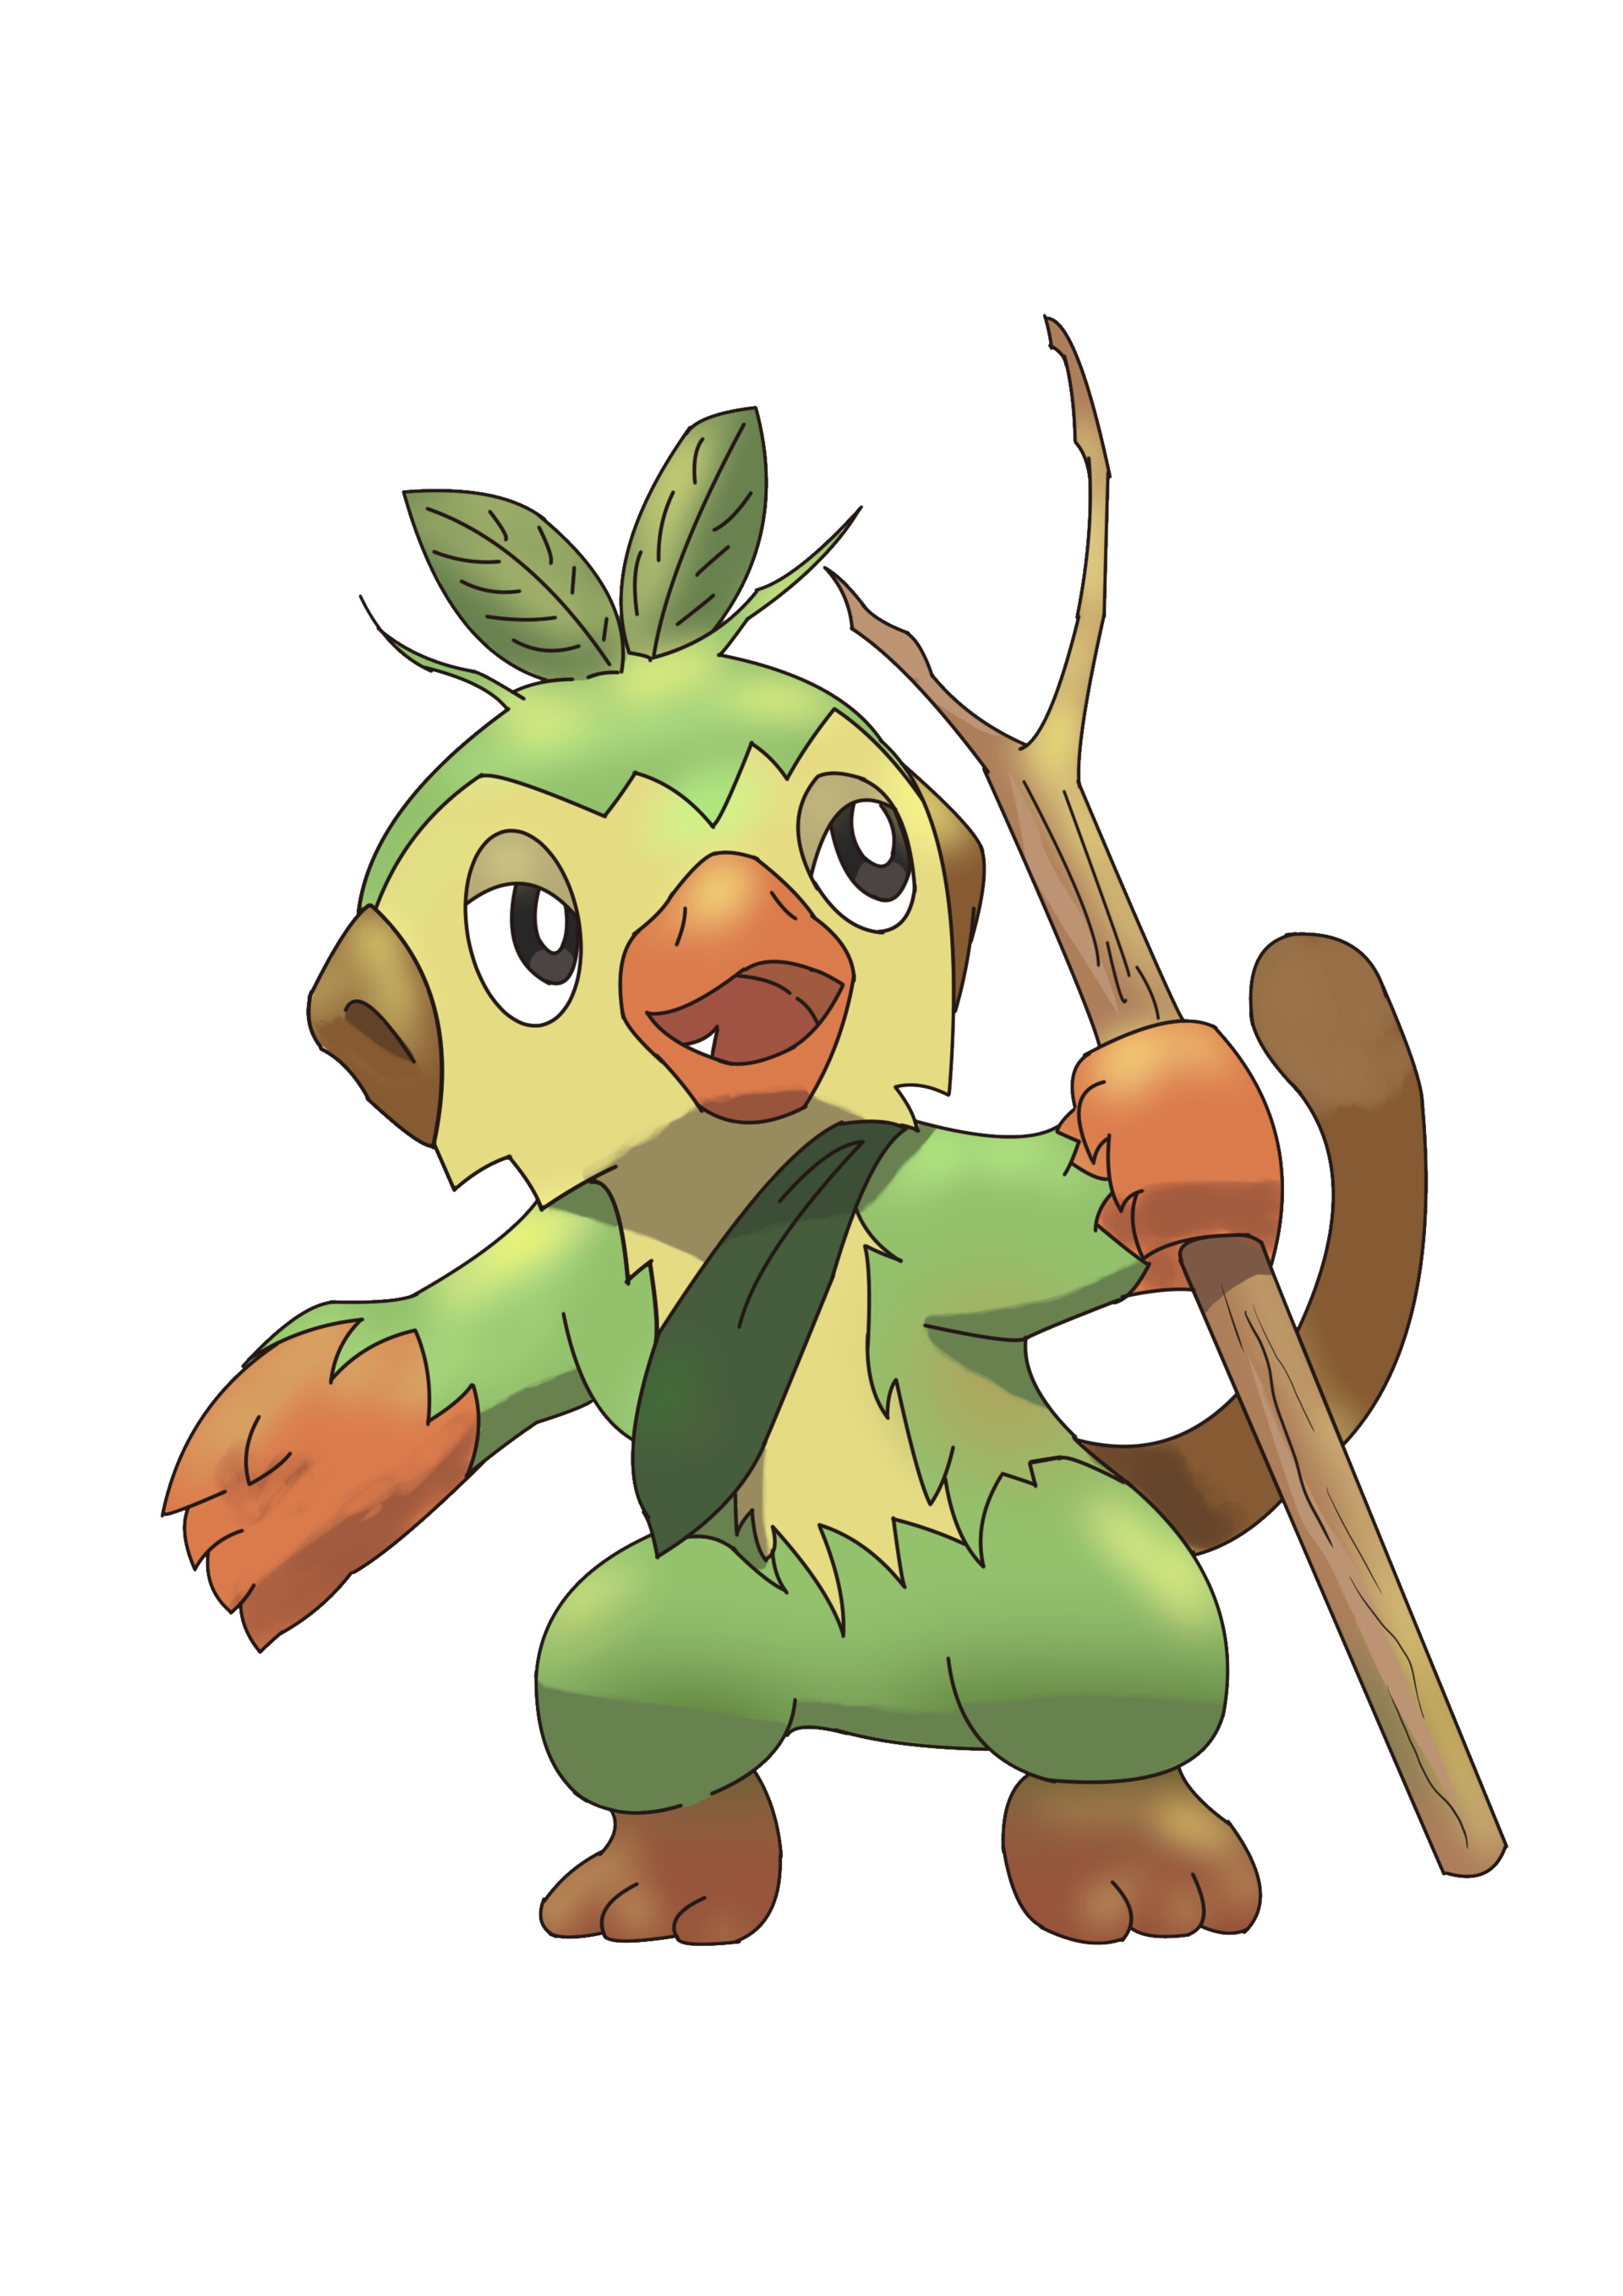 Guillermo Salazar Grookey Evolution Grookey is the pokemon whish has one type (grass) from the 8 generation. guillermo salazar grookey evolution